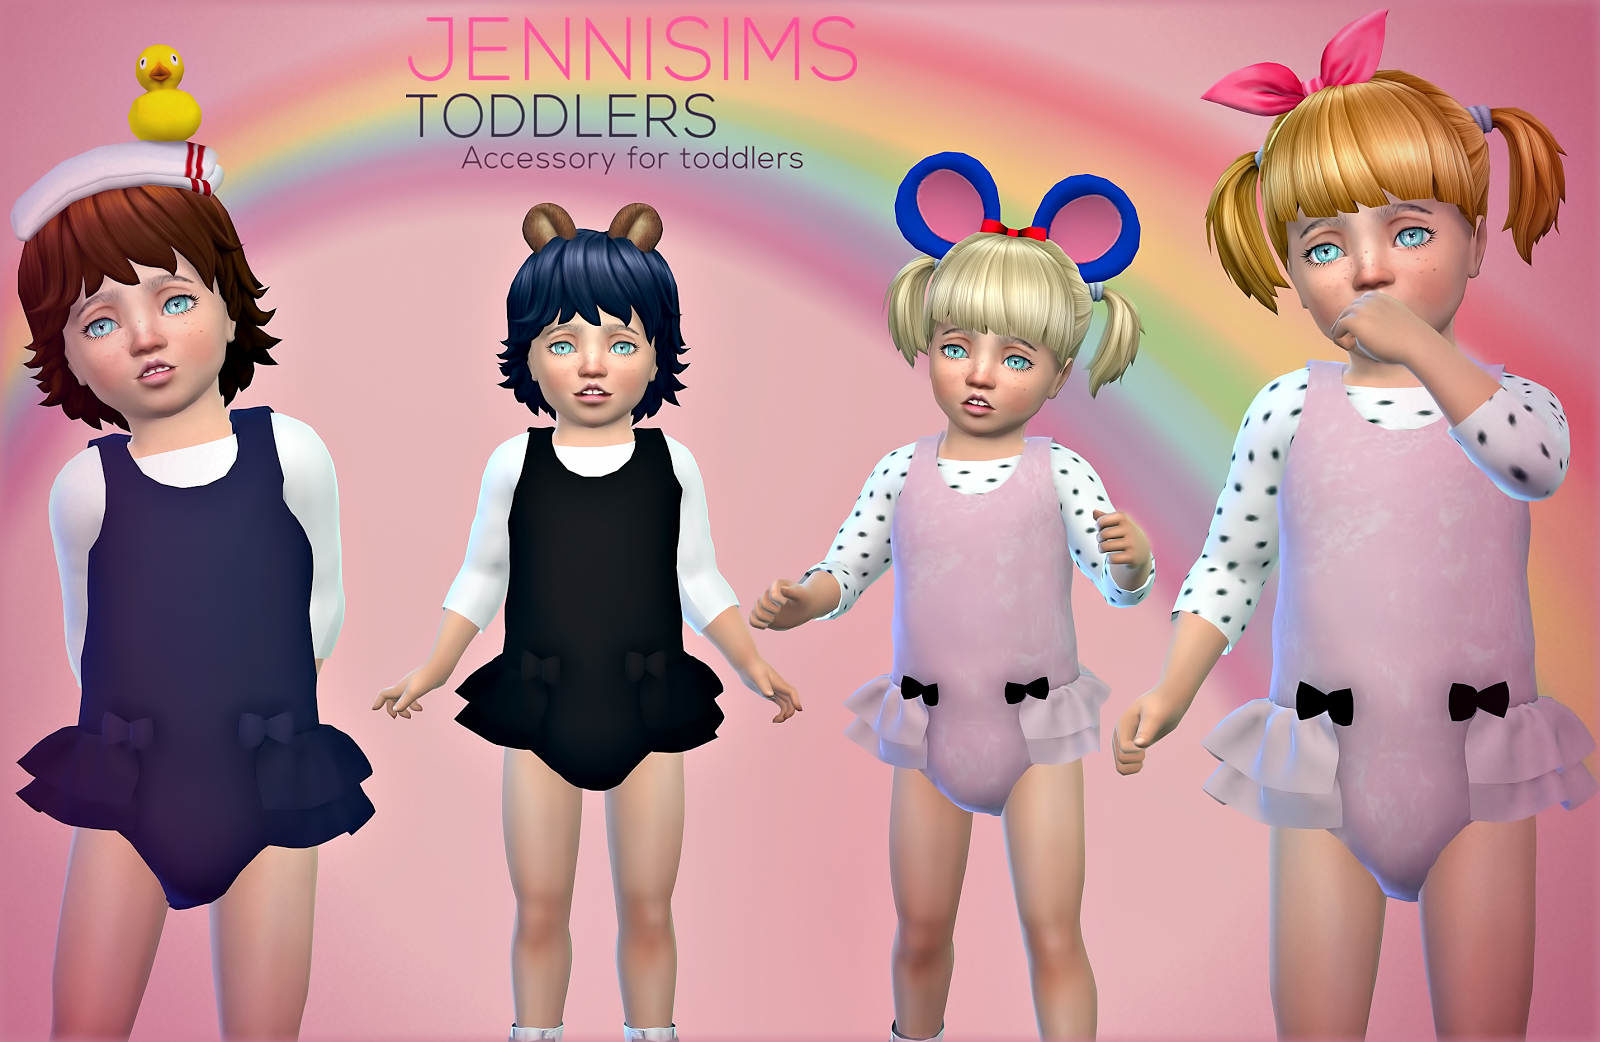 Accessories for Toddlers by JenniSims